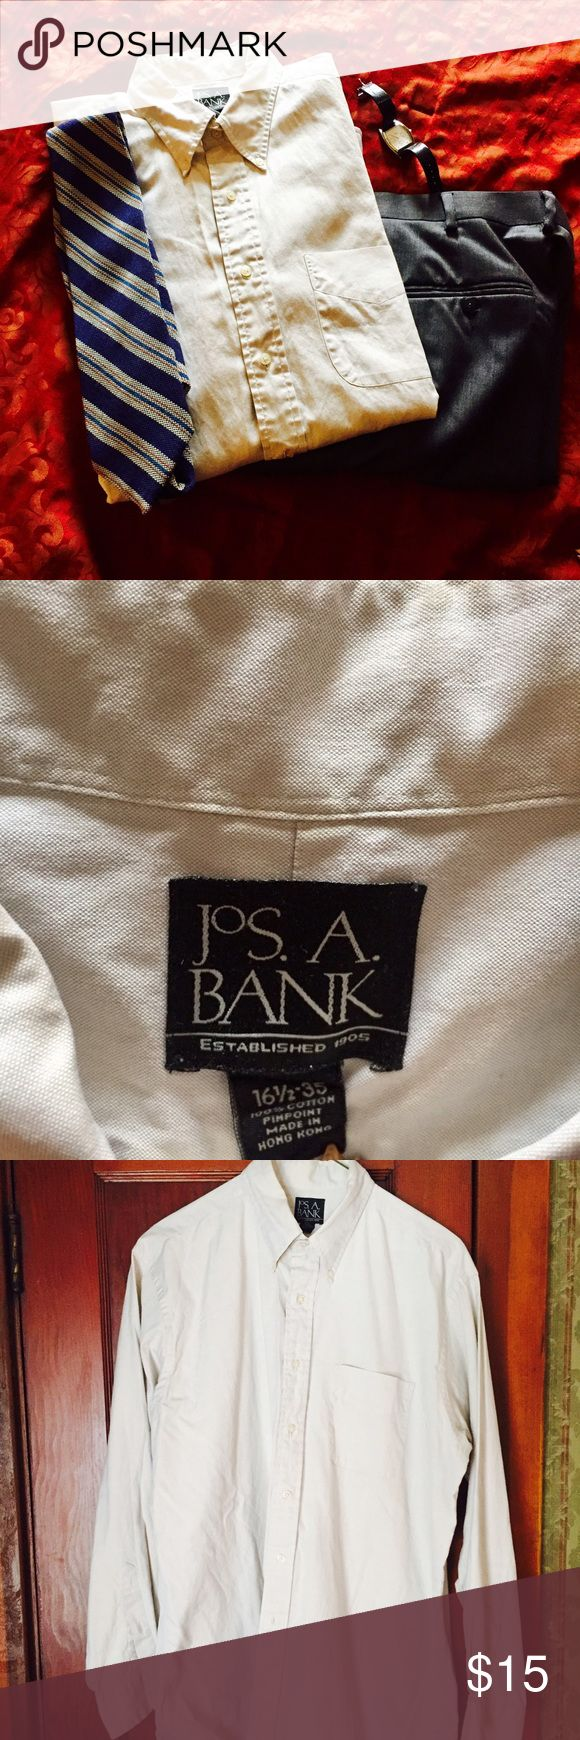 Jos.A.Bank 💯 % cotton button down casual shirt 💯 % Cotton comfortable button down casual shirt. 16 1/2neck, 35 arm length.  Perfect quality and lightly worn.  Goes with anything! A very light beige color. jos. A. Bank Shirts Casual Button Down Shirts